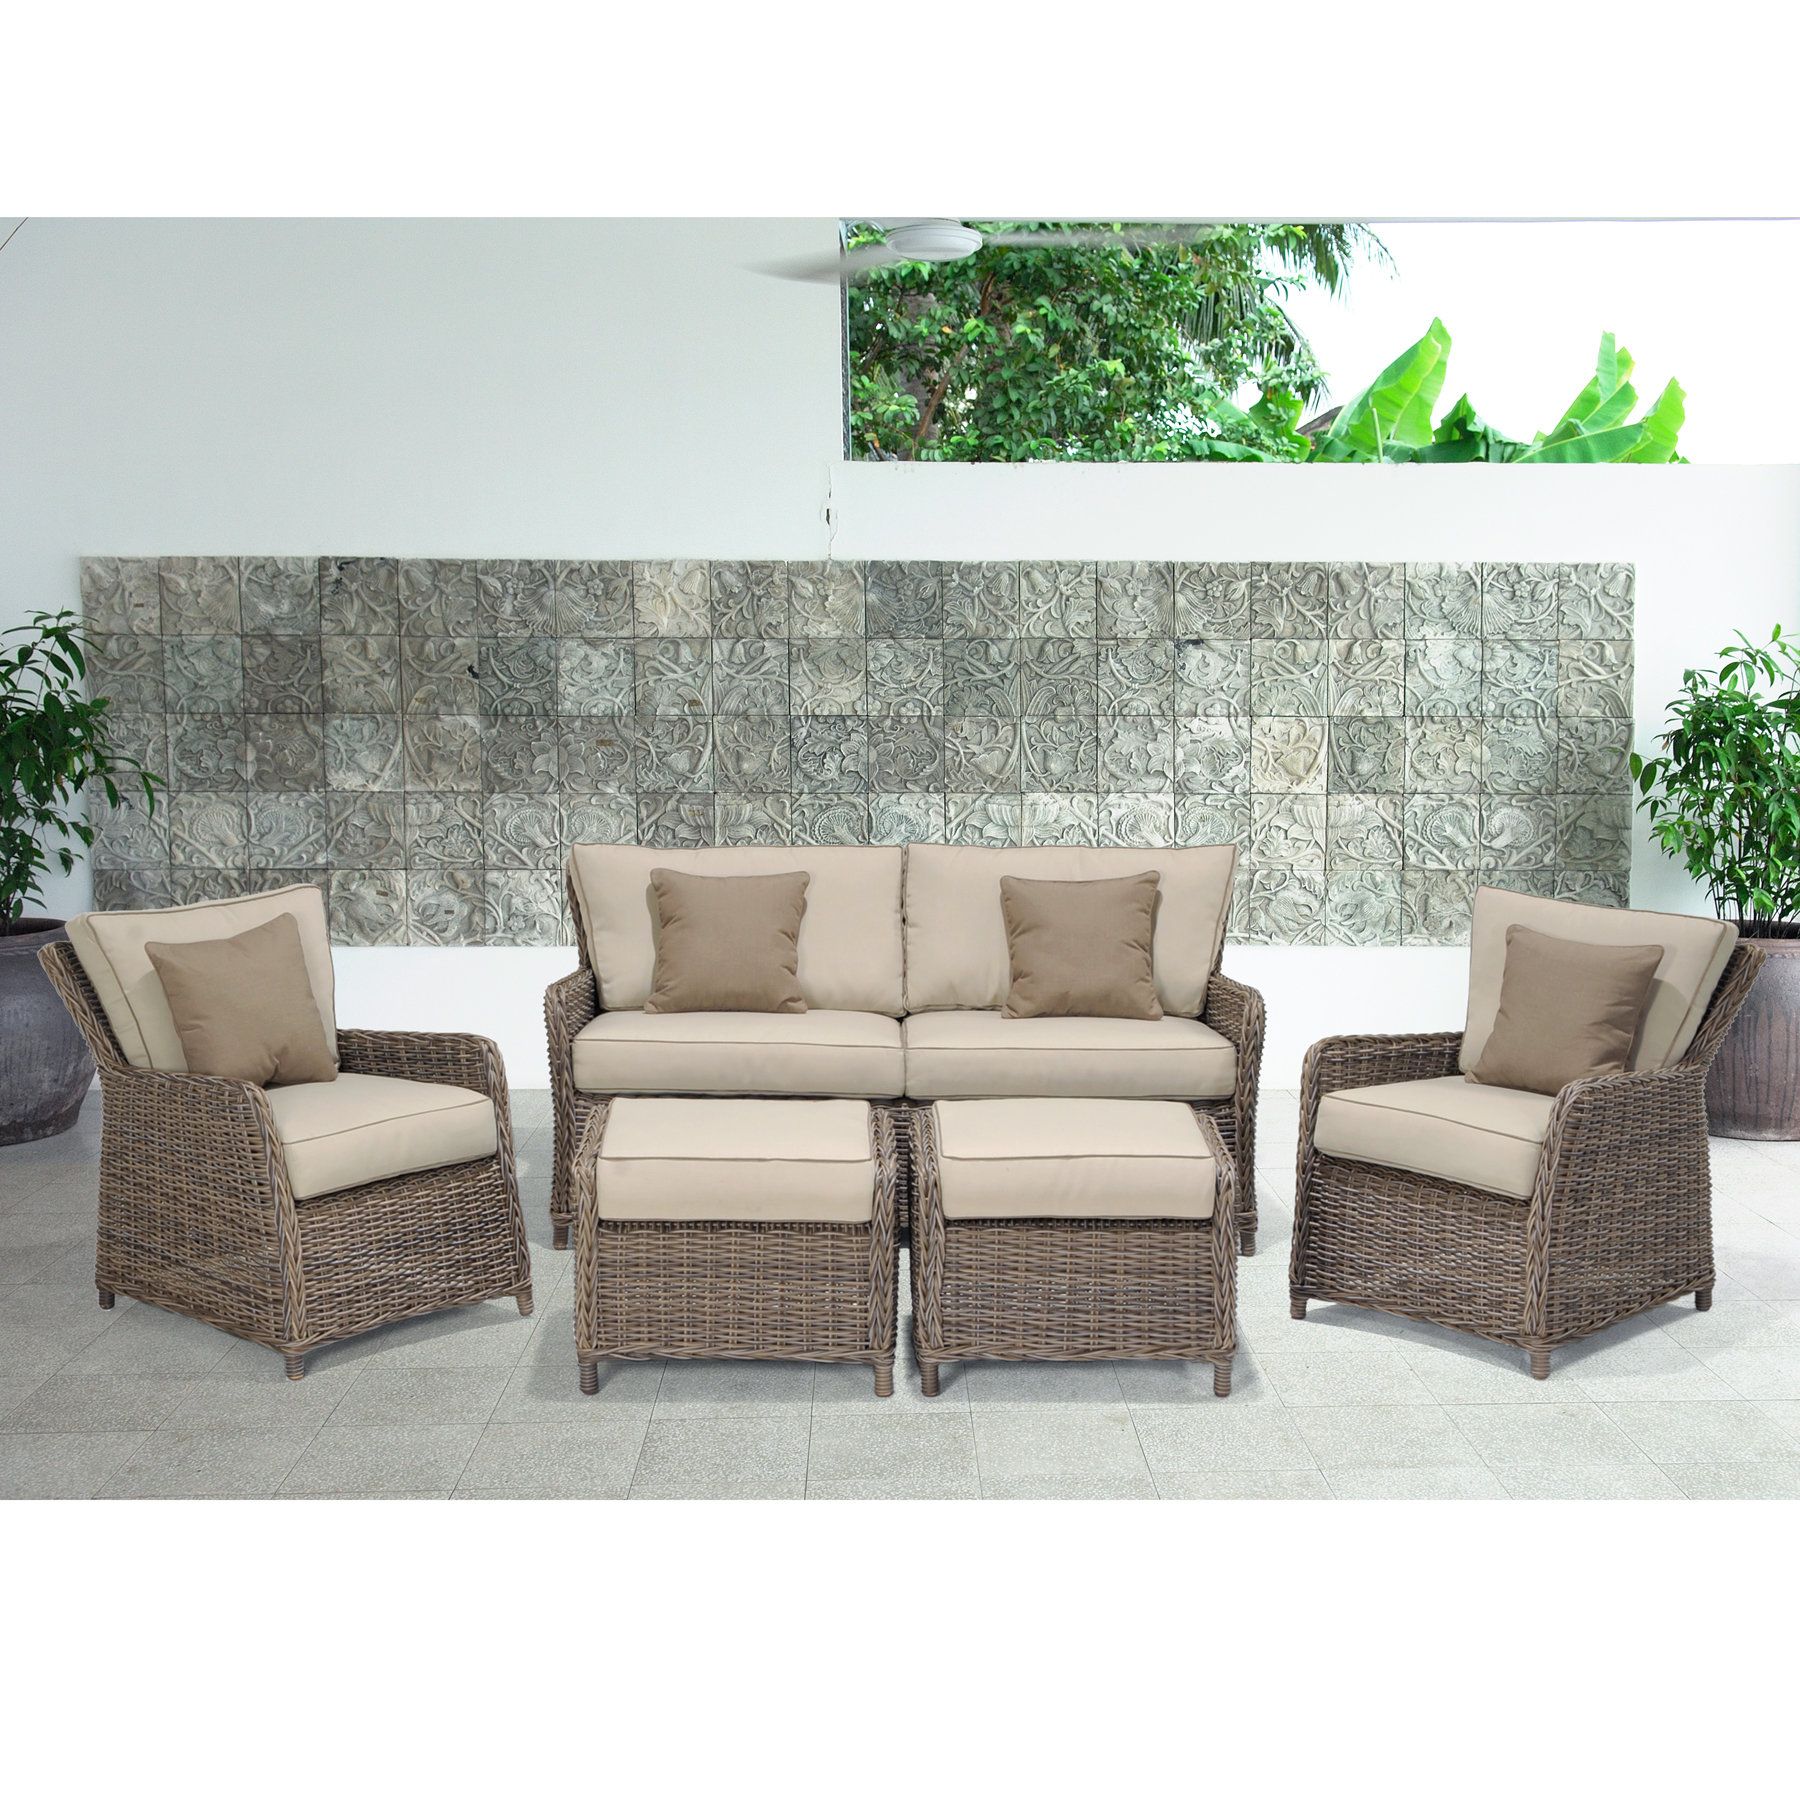 Avadi Outdoor 5 Piece Sofa Seating Group For Well Known Avadi Outdoor Sofas & Ottomans 3 Piece Set (View 1 of 25)